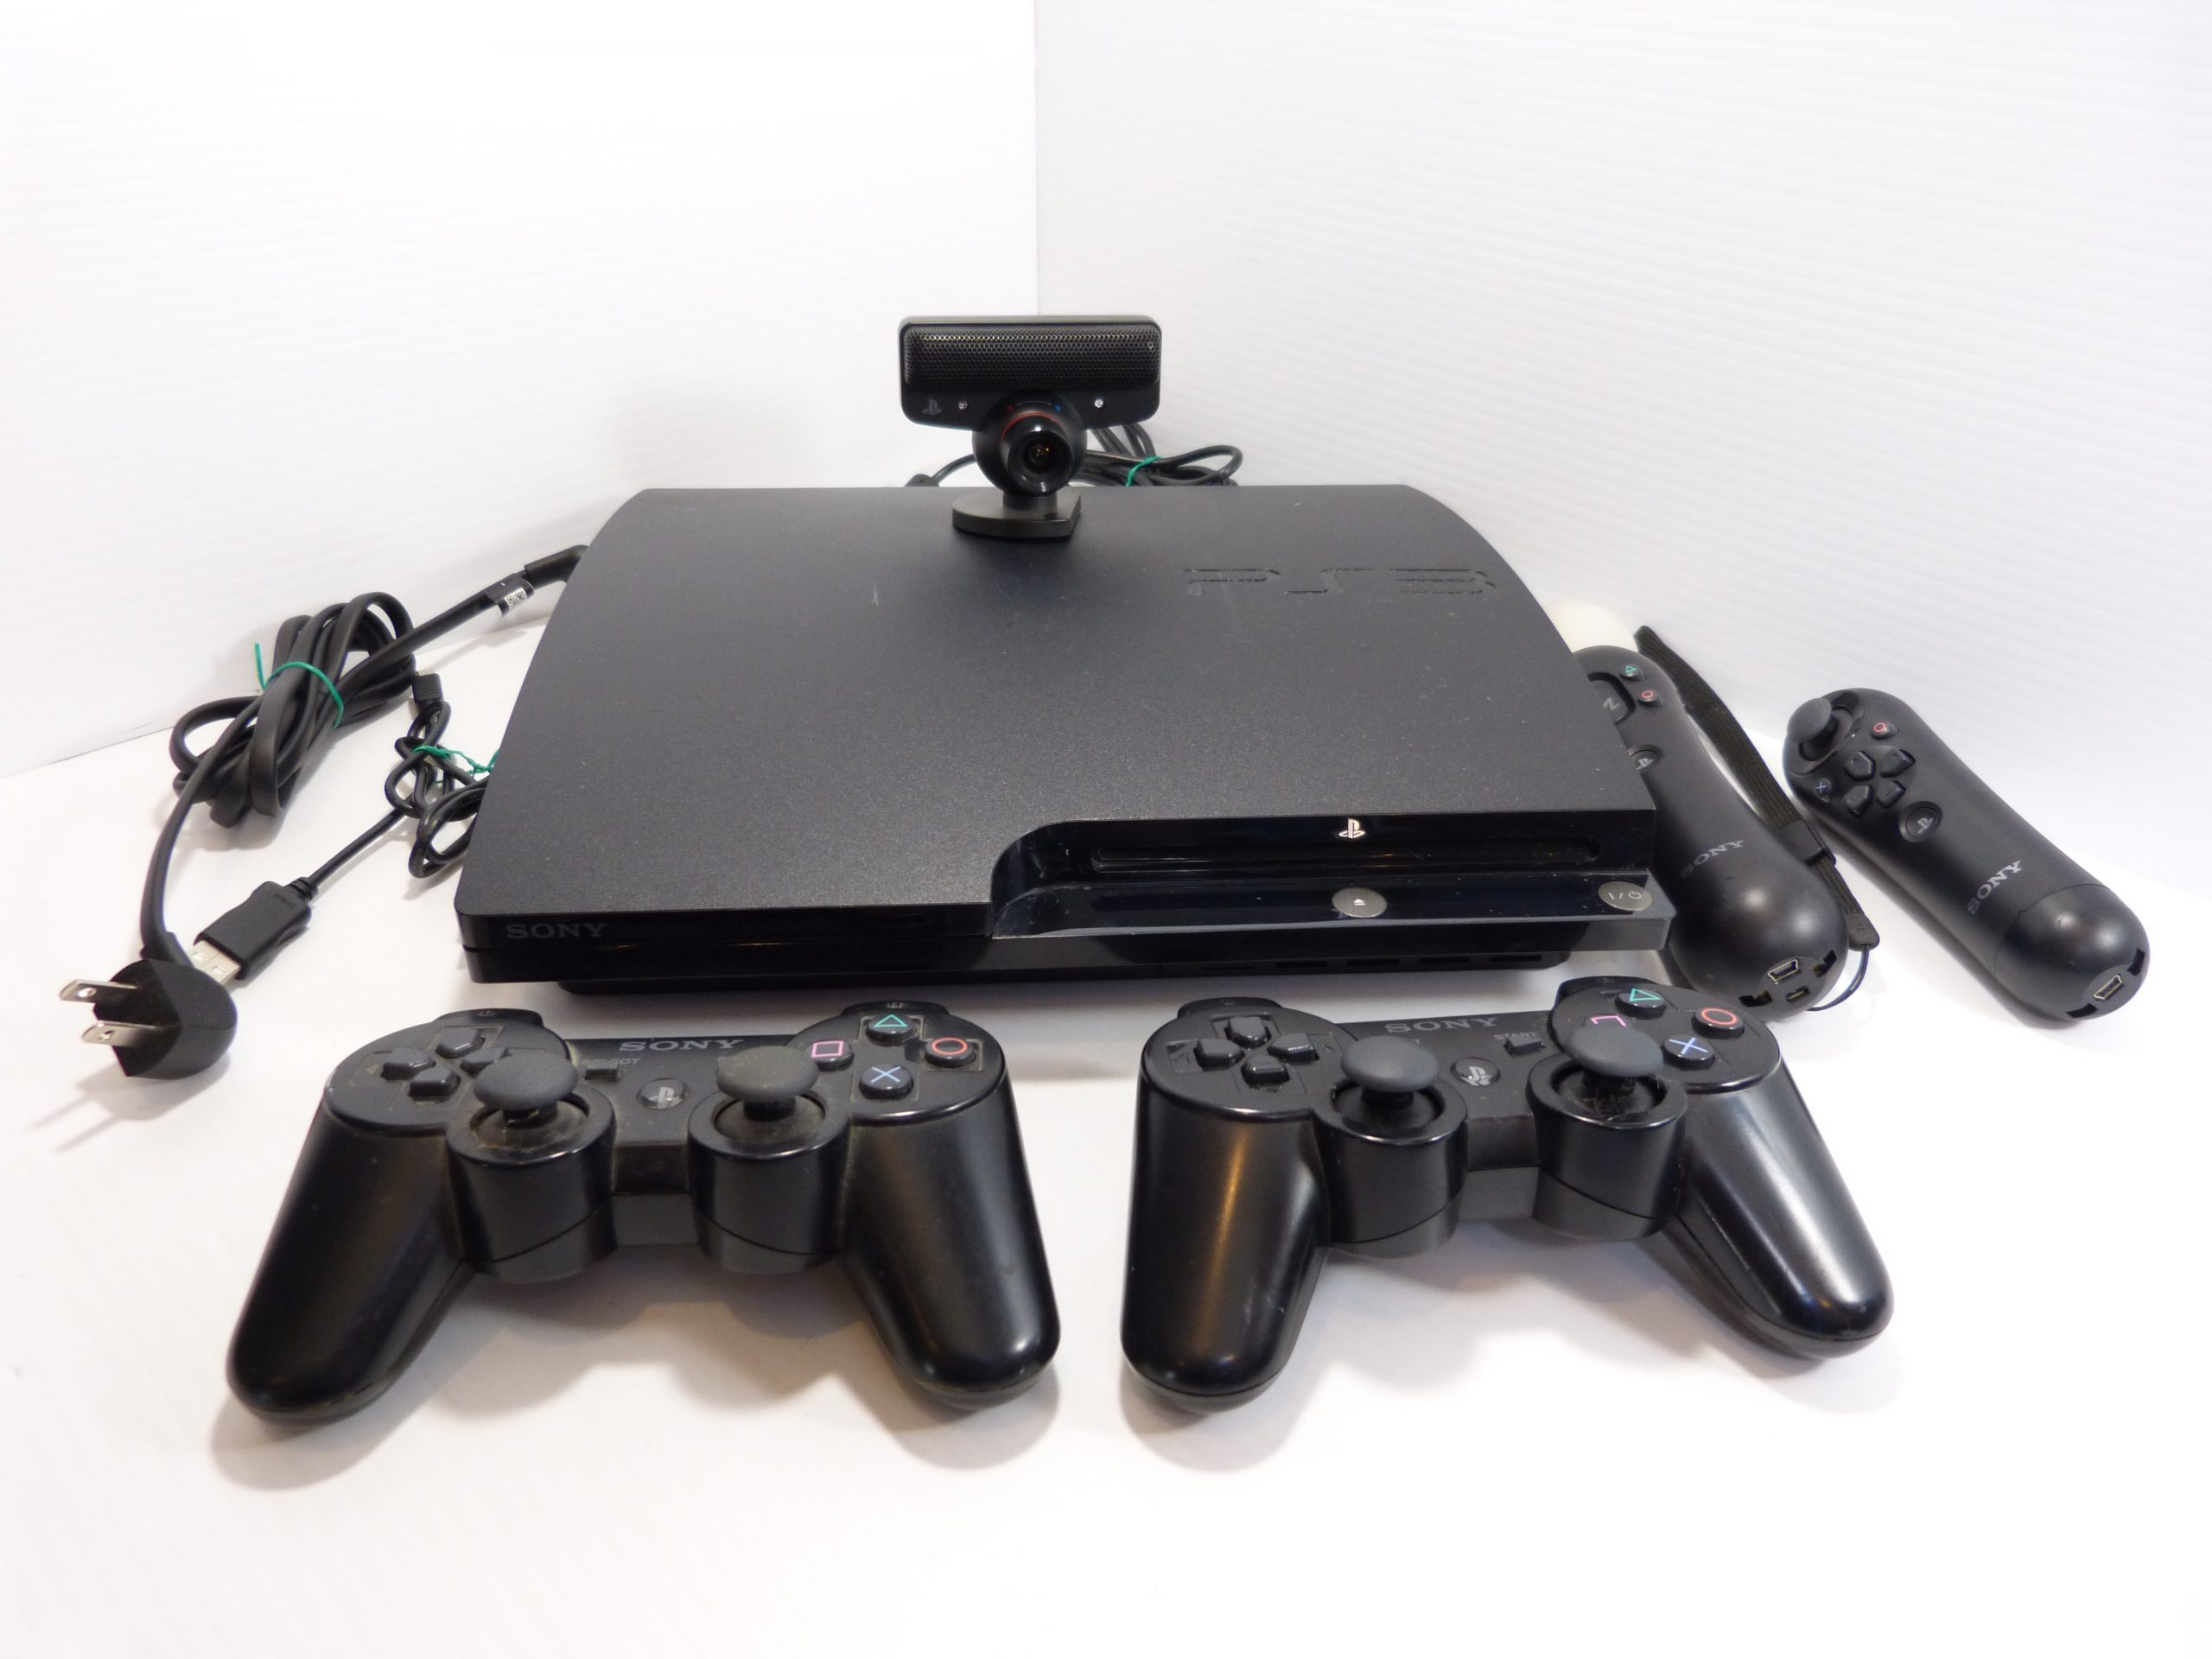 Sony Playstation 3 PS3 120Gb Bundle CECH-2001A TESTED